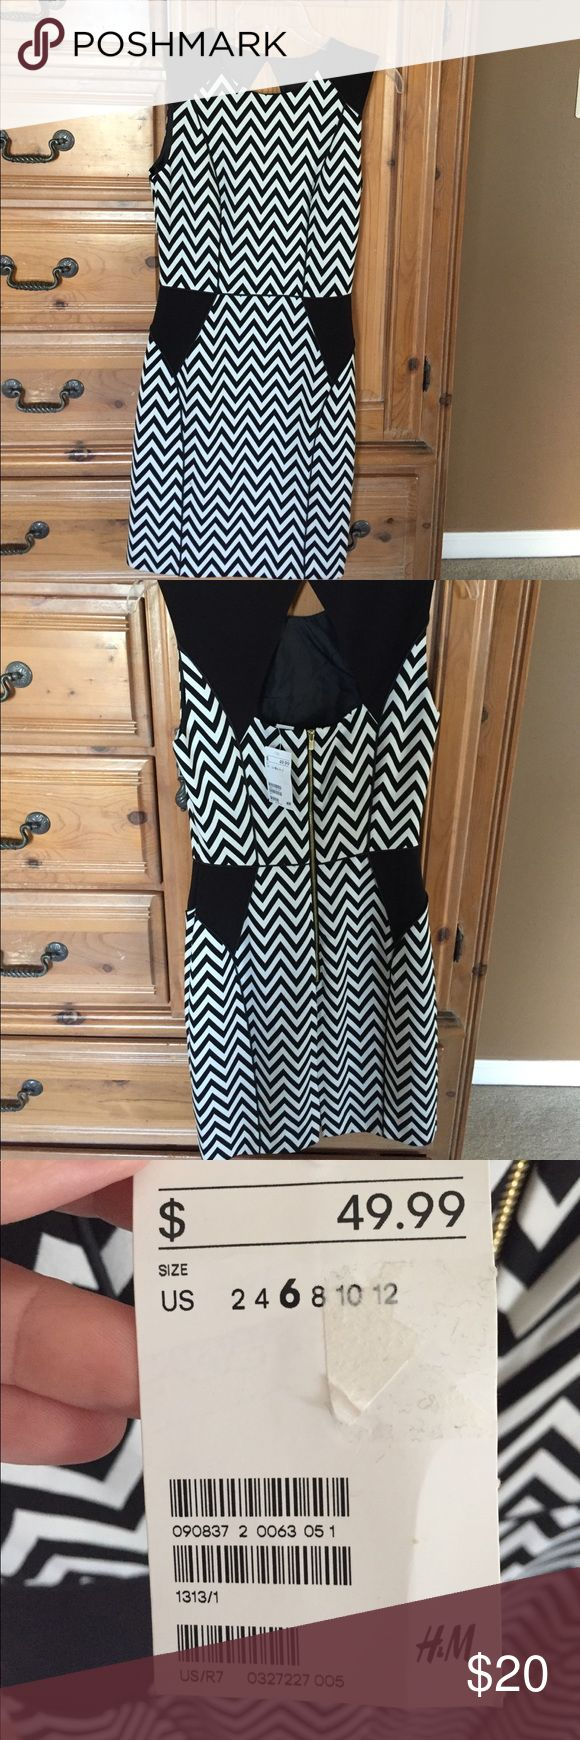 "H&M Chevron Print Dress Black and white chevron print H&M dress. Fitted and fully lined. A little bit of stretch to it. Diamond shaped keyhole cut out Gold exposed zipper up the back. Length 35"" bust 16"" waist 13"" (laying flat). Material is polyester, viscose and elastine. It's darling on!! H&M Dresses Midi"